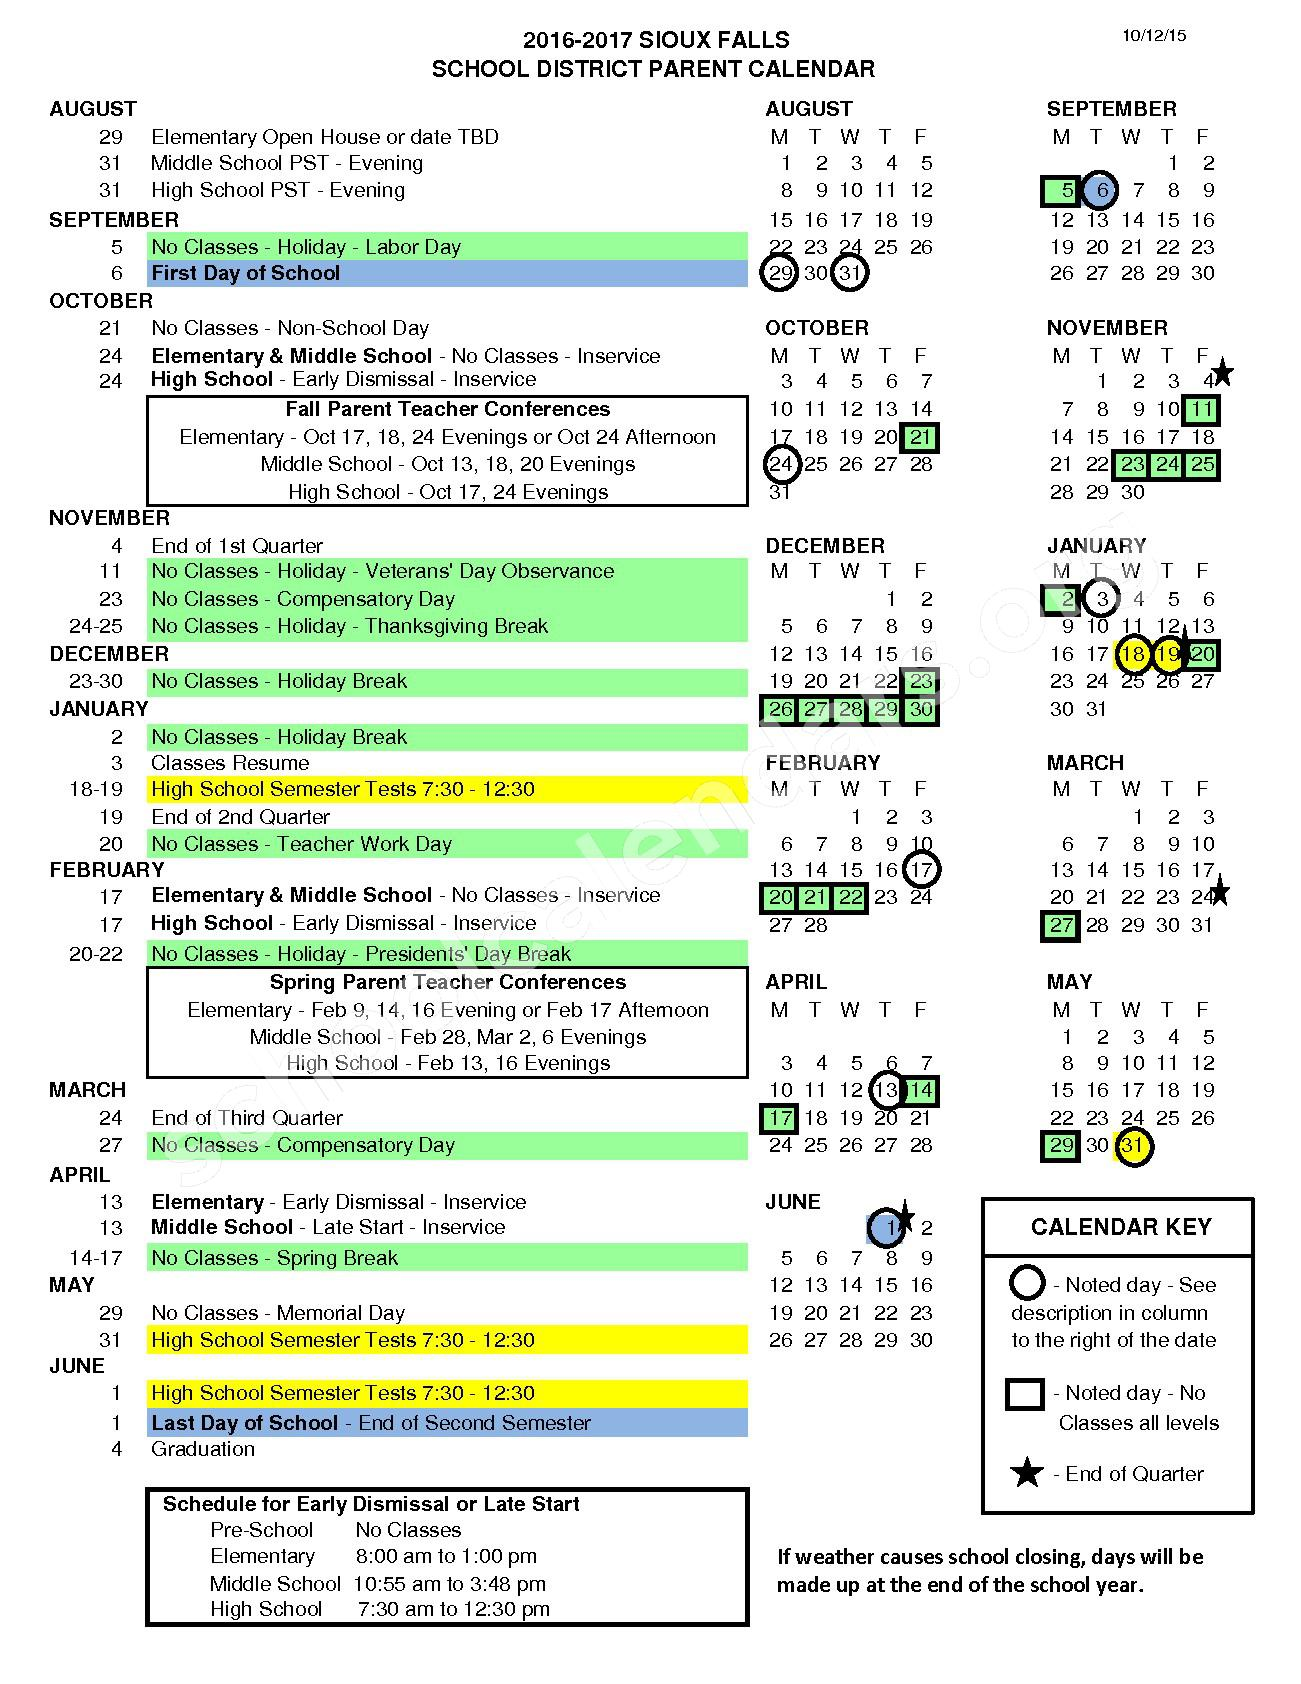 2016 - 2017 District Calendar – Sioux Falls School District – page 1